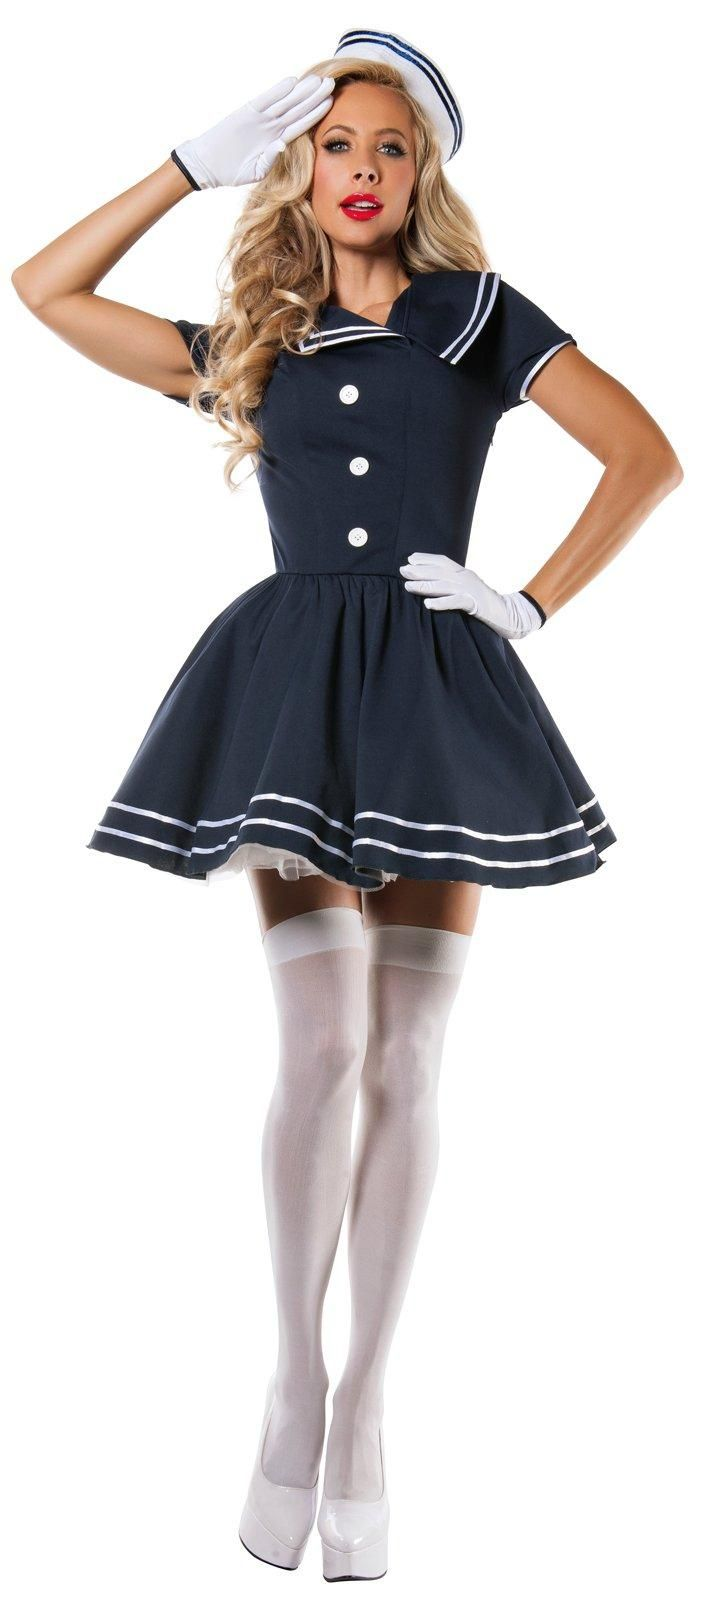 Sailor Captain Costume for Adults from CostumeExpress.com